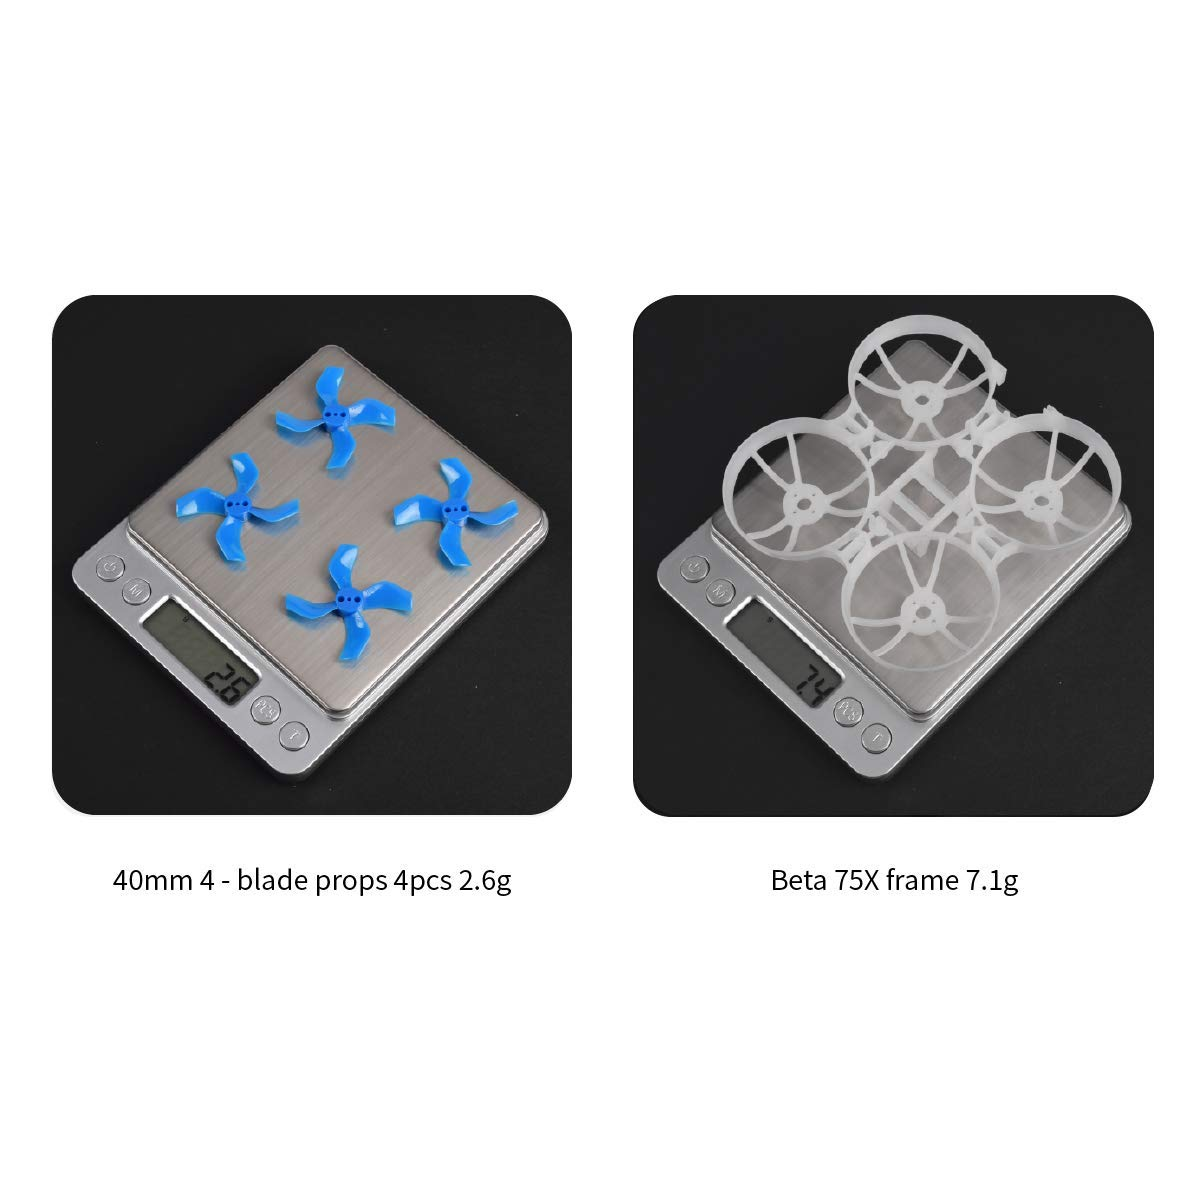 BETAFPV Beta75X 3S Whoop Frame Kit Black with 2 Sets 40mm 4-Blade Props 1.5mm Shaft Blue for 1103 Brushless Motor 75mm 3S Whoop Drone Like Beta75X BNF